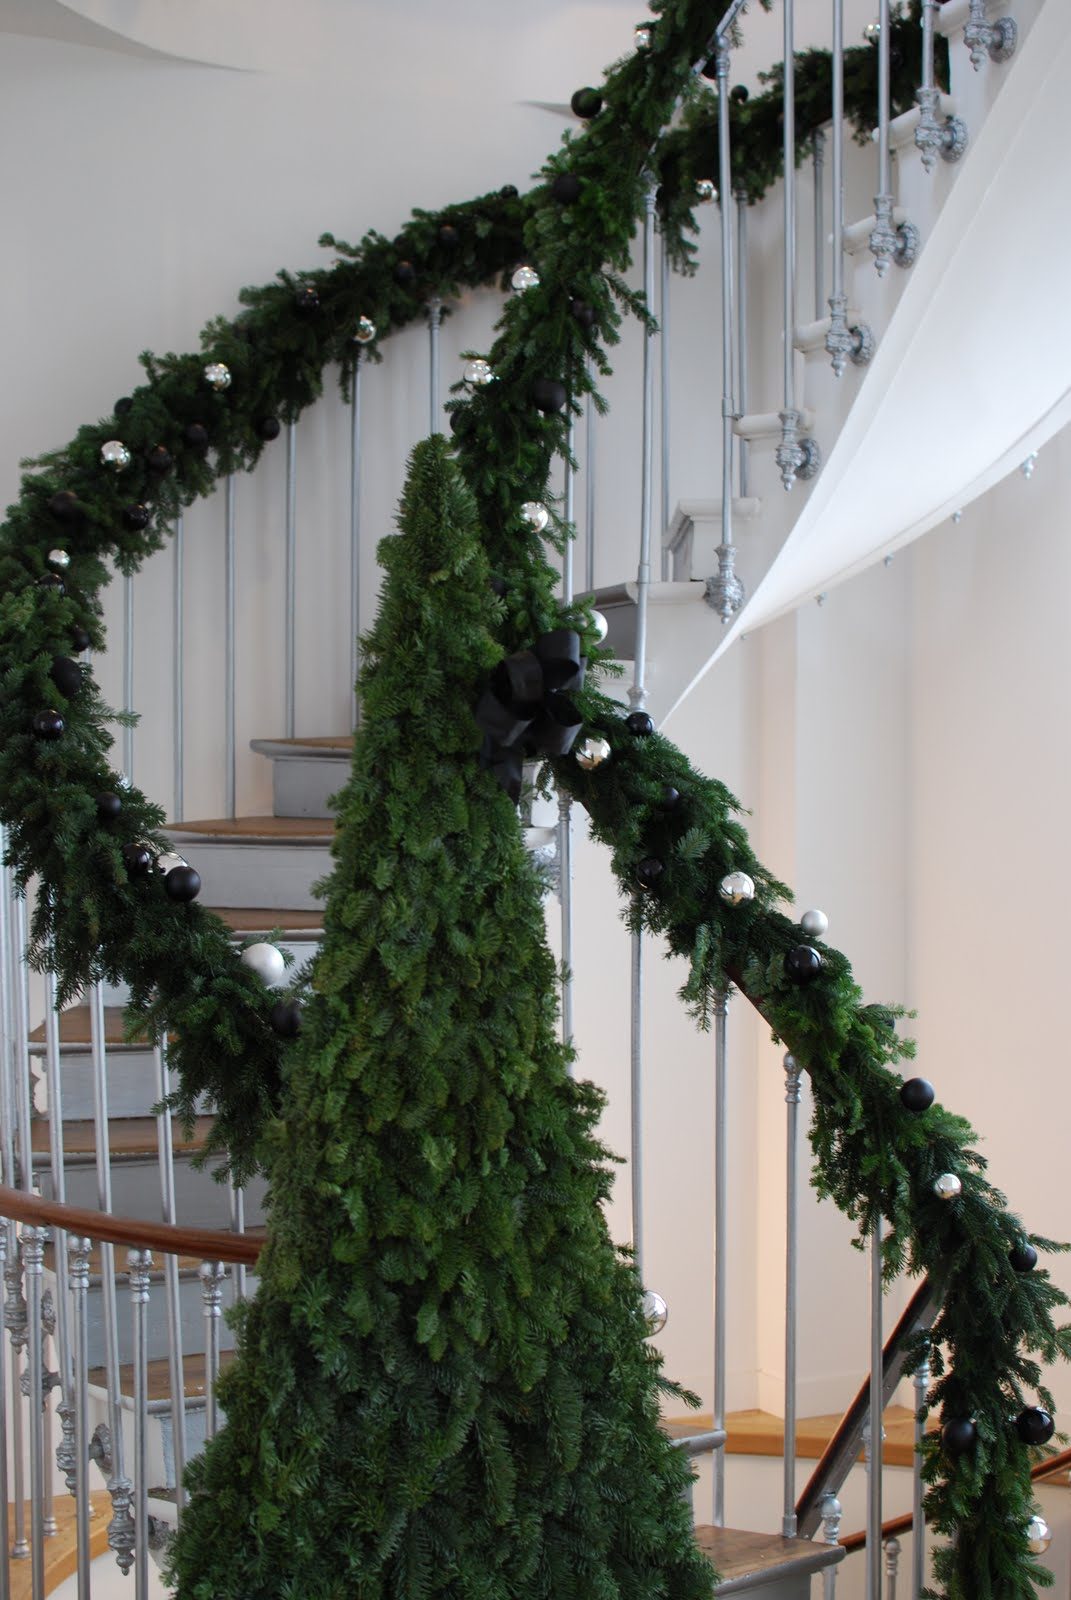 Catherine muller flower school christmas floral arrangement in paris for Escalier decor